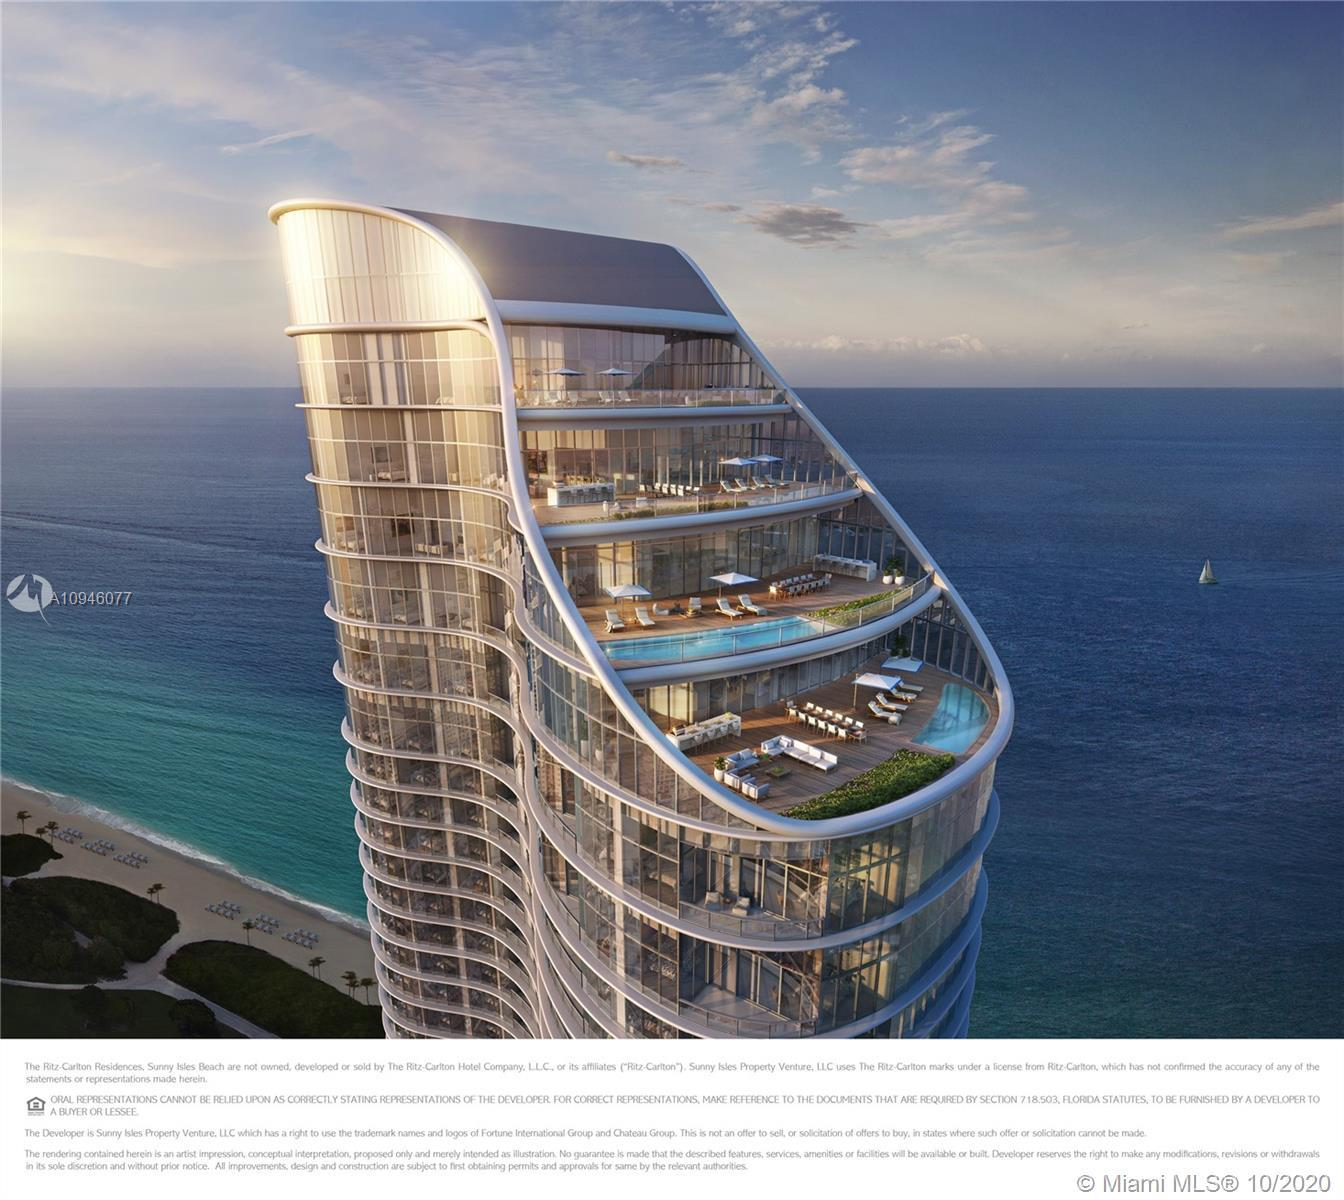 Spectacular 2 Bed plus Den & 2.5 Bathroom residence in the Ritz Carlton Residences with direct ocean